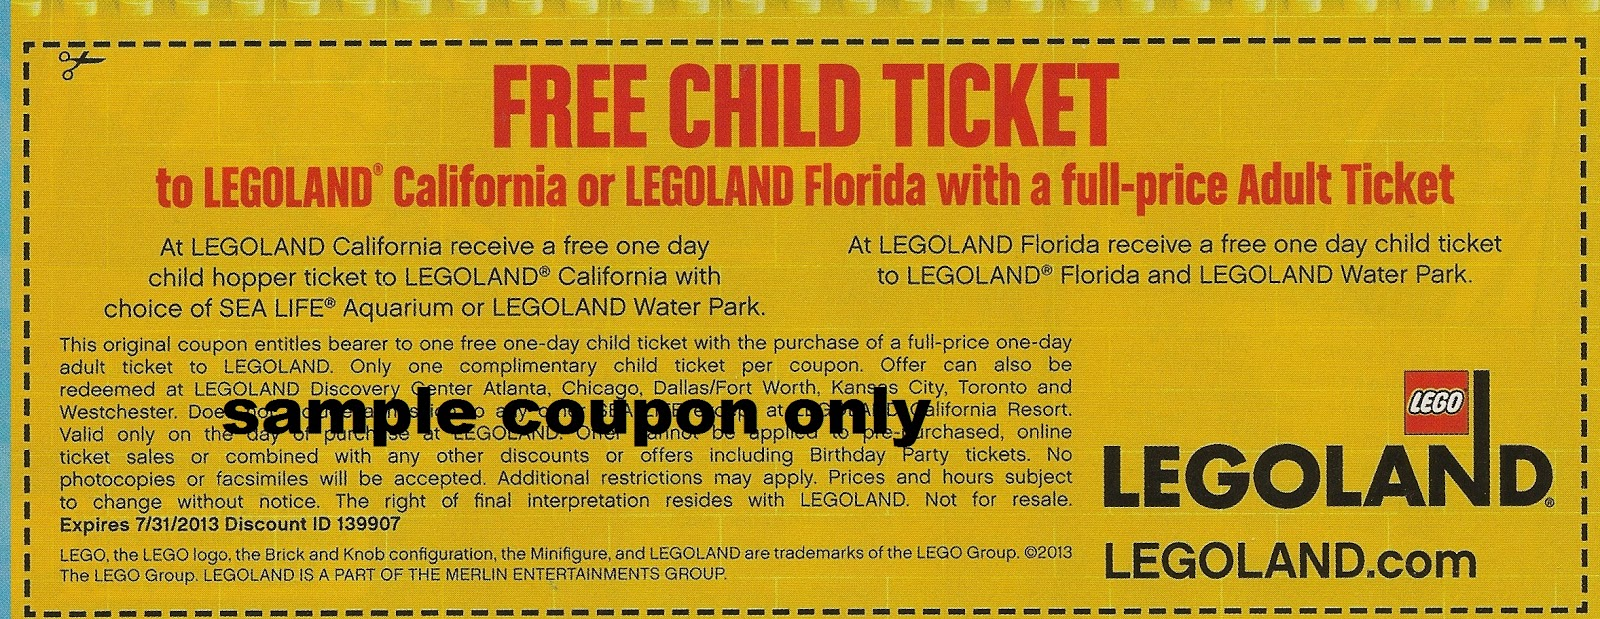 FLORIDA COUPONS 2019